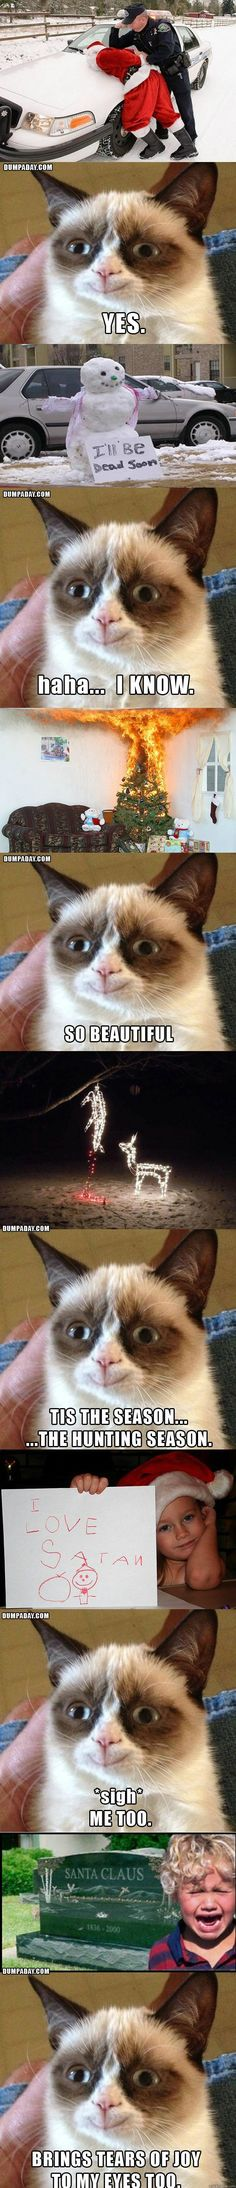 grumpy cat ROTFL- i'm about to pee myself.. what makes grumpy happy at christmas...